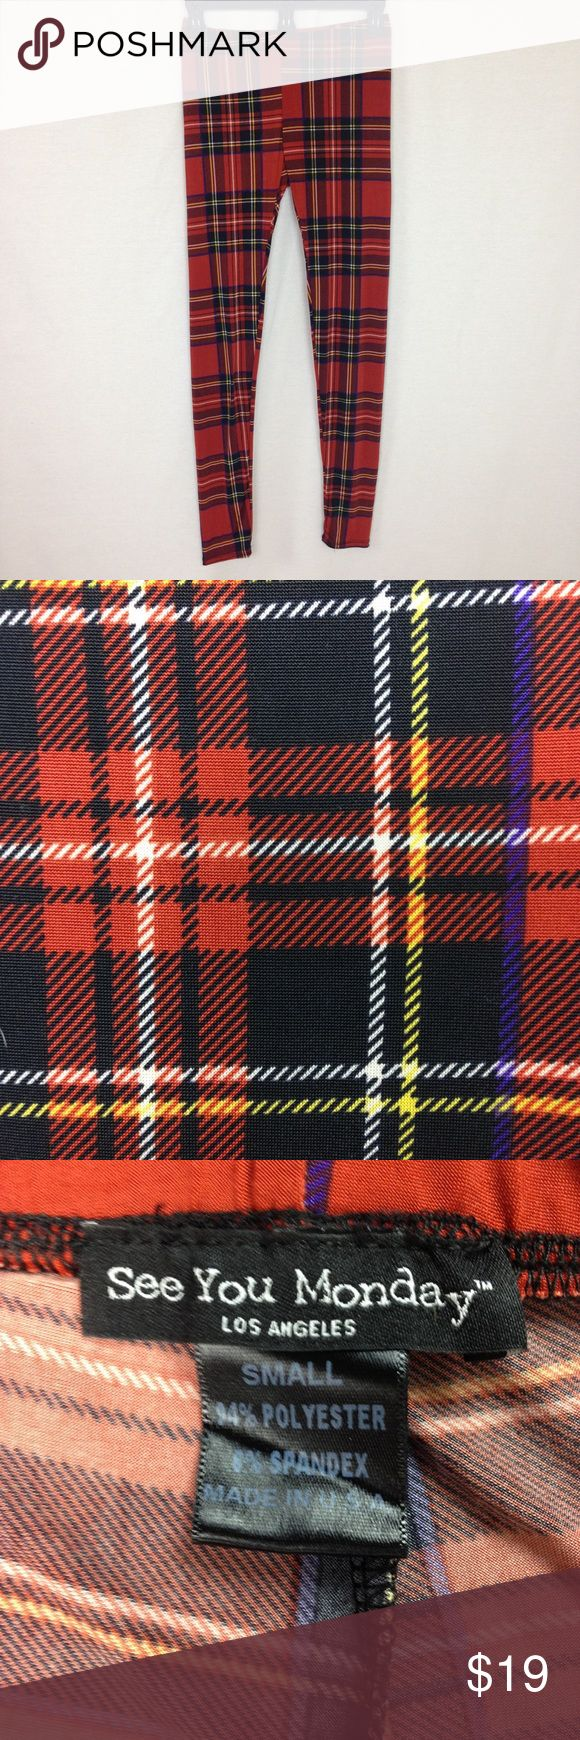 See You Monday Women's Small Red Plaid Leggings See You Monday Women's Small Punk Rock Red Plaid Holiday Christmas Tartan Leggings  Soft silky smooth feel Great for yoga or lounge pants    Waist 25 26 27 28 inches Inseam 28 inches Rise 8  inches  94% polyester 6% spandex   binF1 See You Monday Pants Leggings